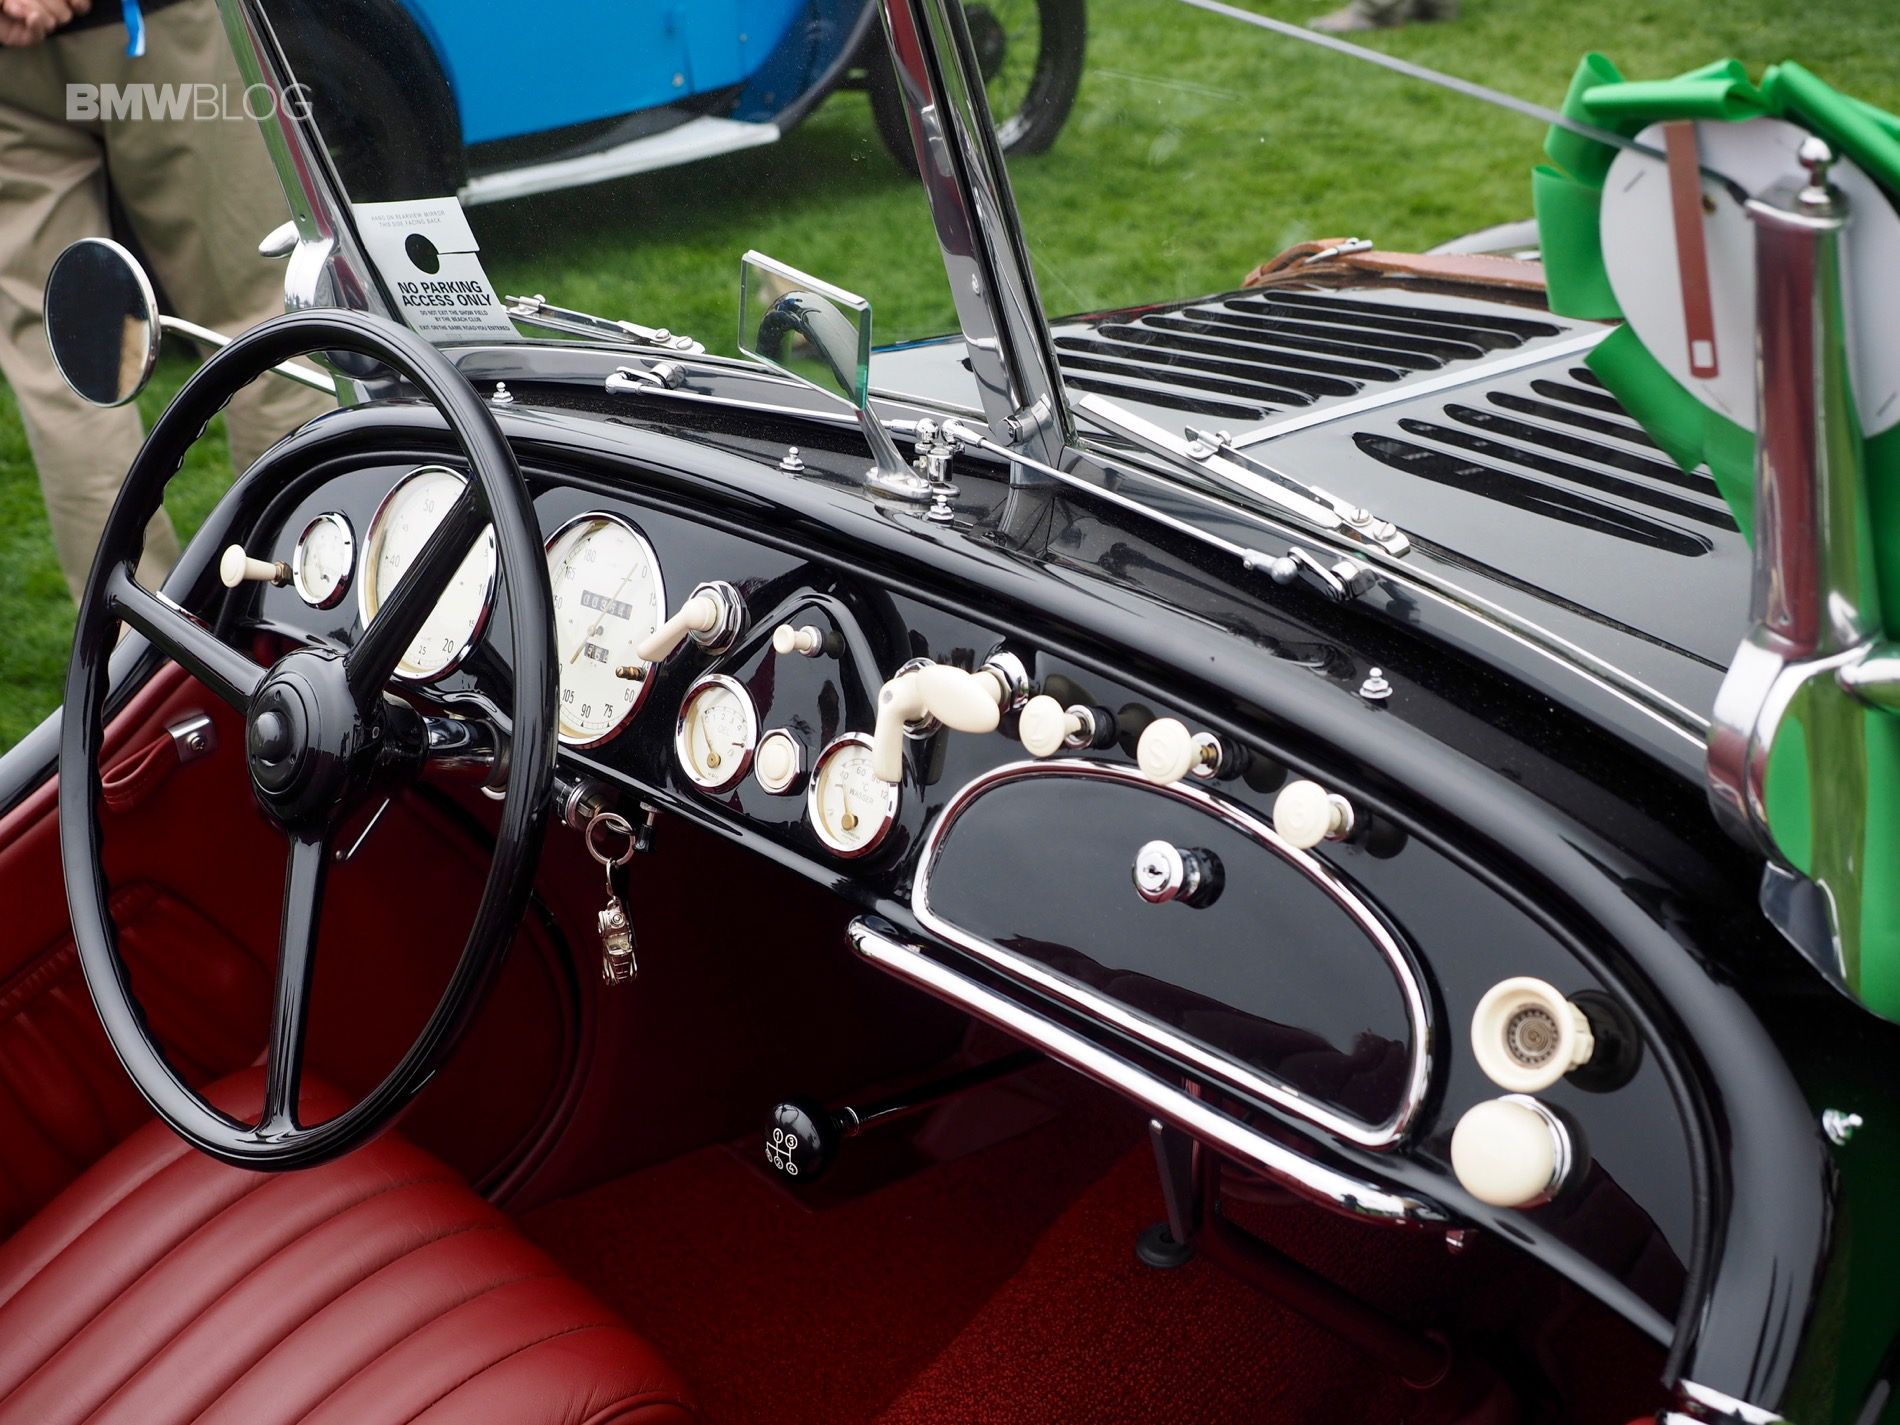 1937 BMW 328 Roadster - The Successful Racing Car Of The 30s